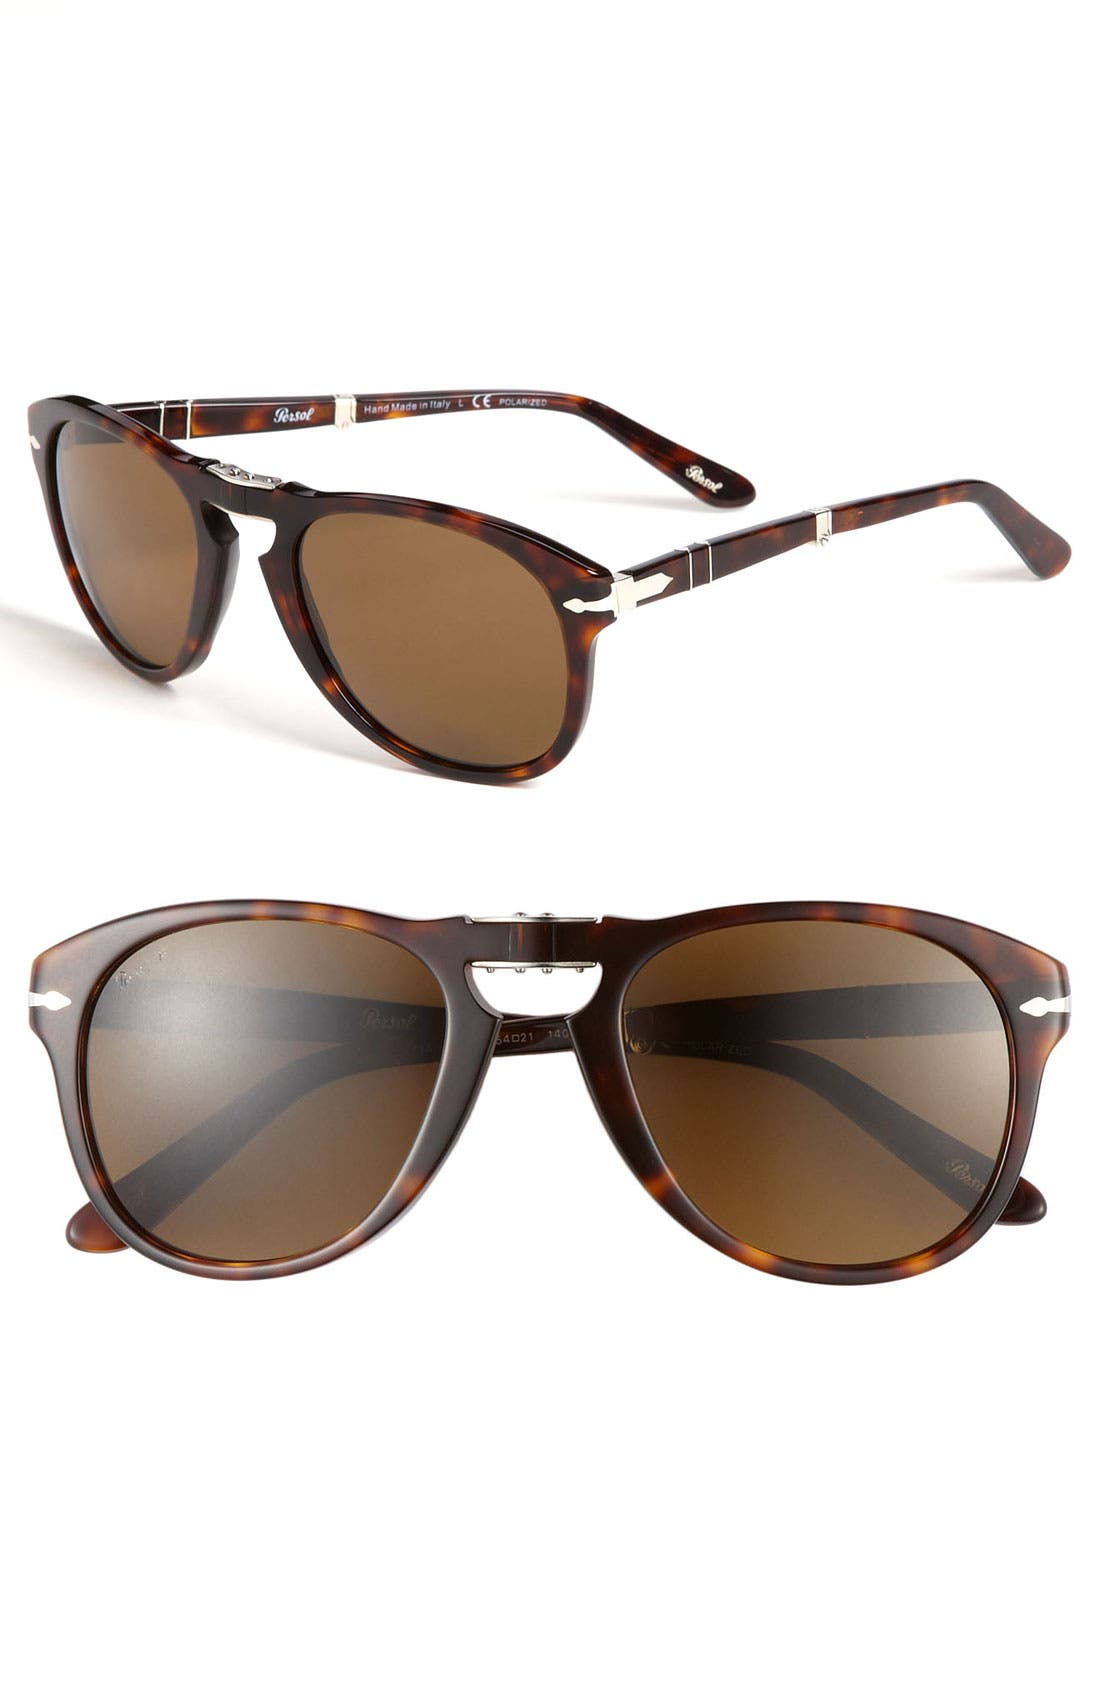 Alternate Image 1 Selected - Persol '714' 57mm Folding Polarized Keyhole Sunglasses